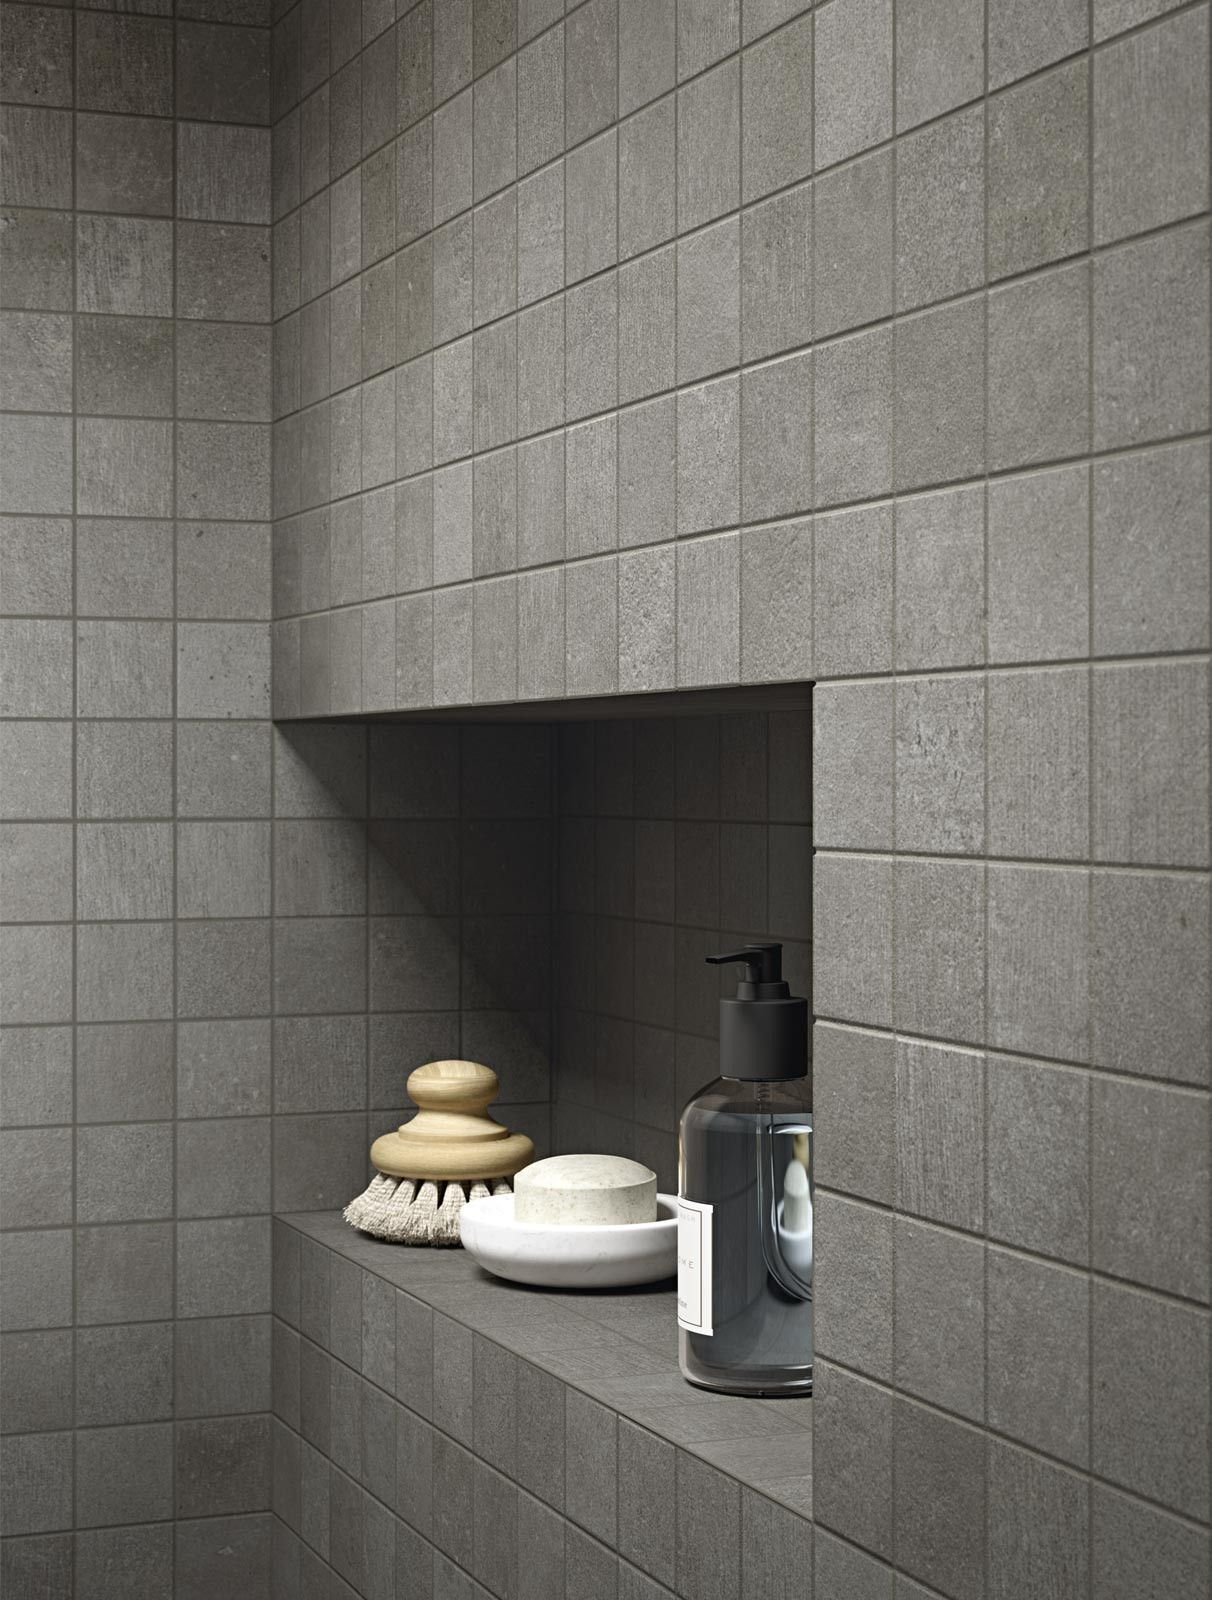 Tile placement products del conca tiles master bath pinterest washroom and toilet also